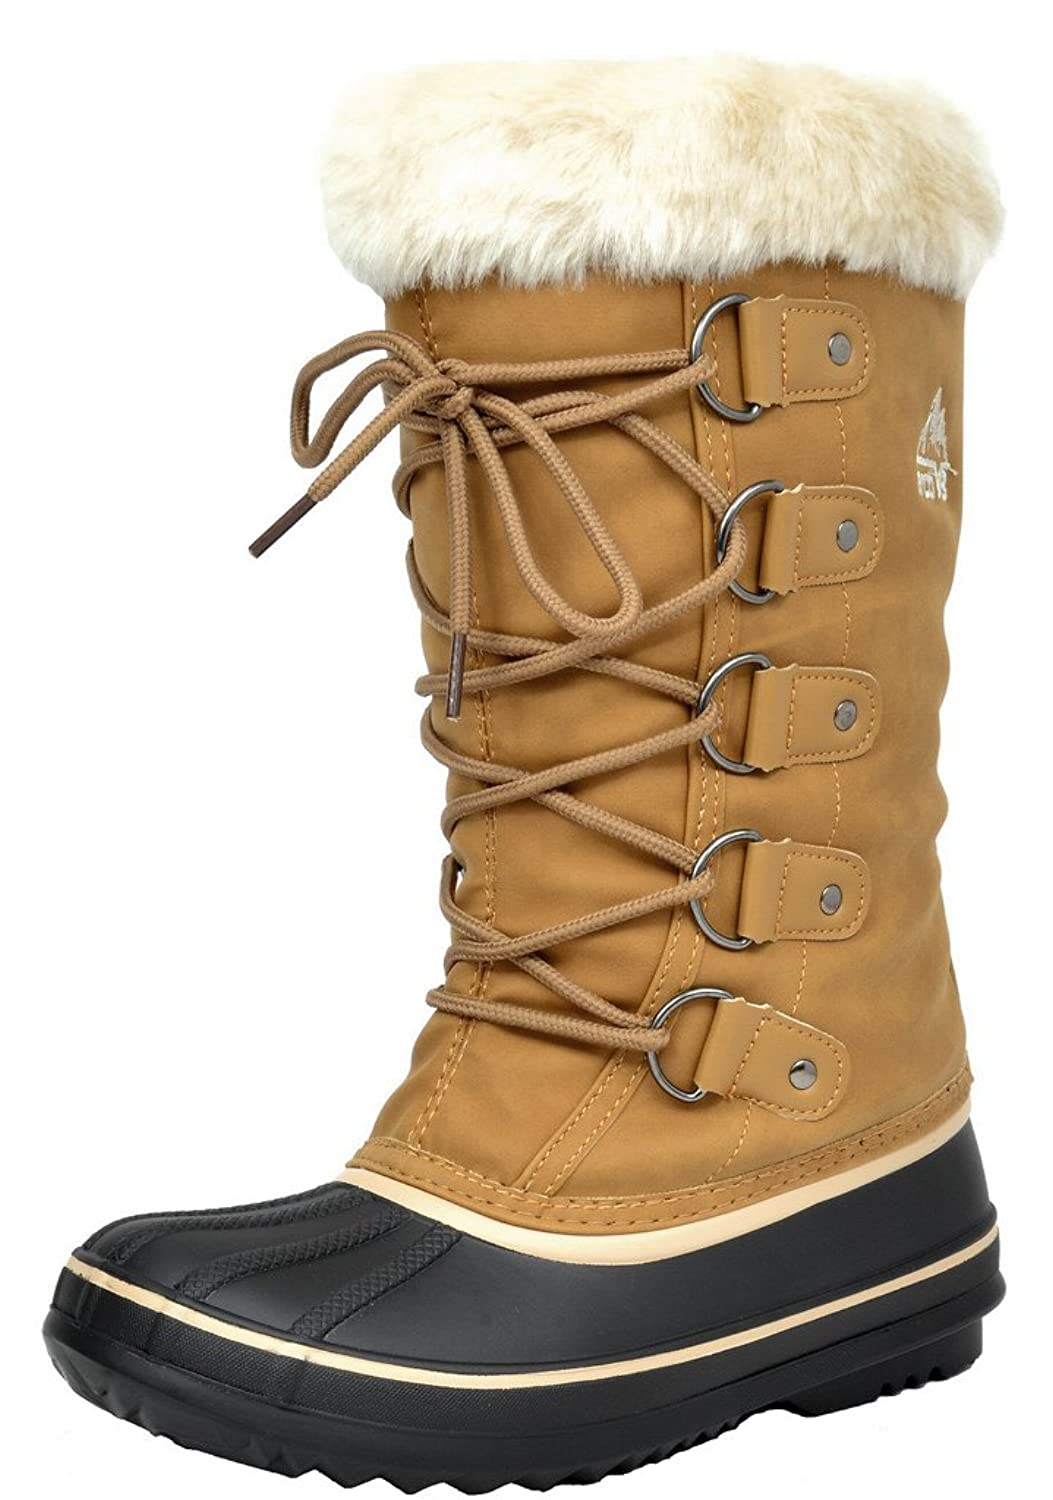 ARCTIV8 BERIN Women's Winter Insulated Faux Fur Lining Cozy Warm Water Resistant Snow Boots